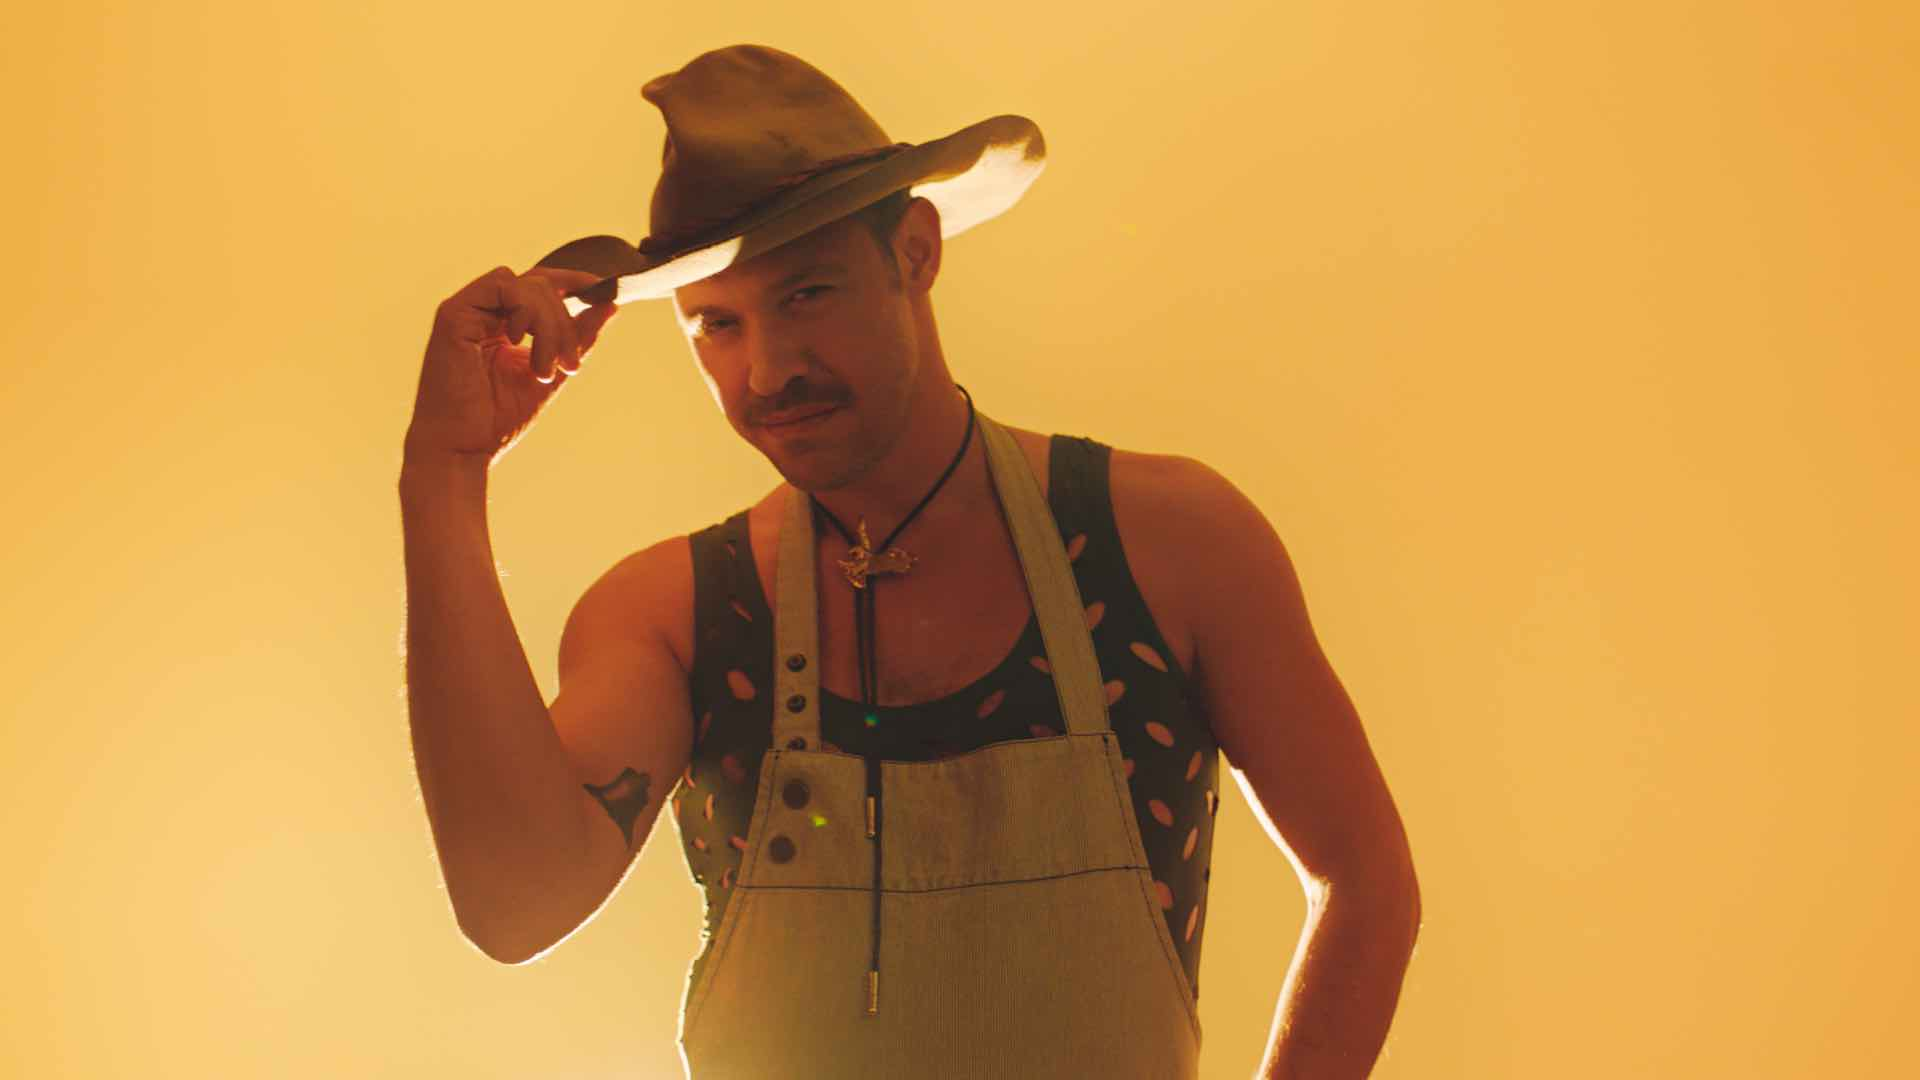 Will Young dressed as a semi-sexy cowboy for some reason... I'm confused by this picture so much